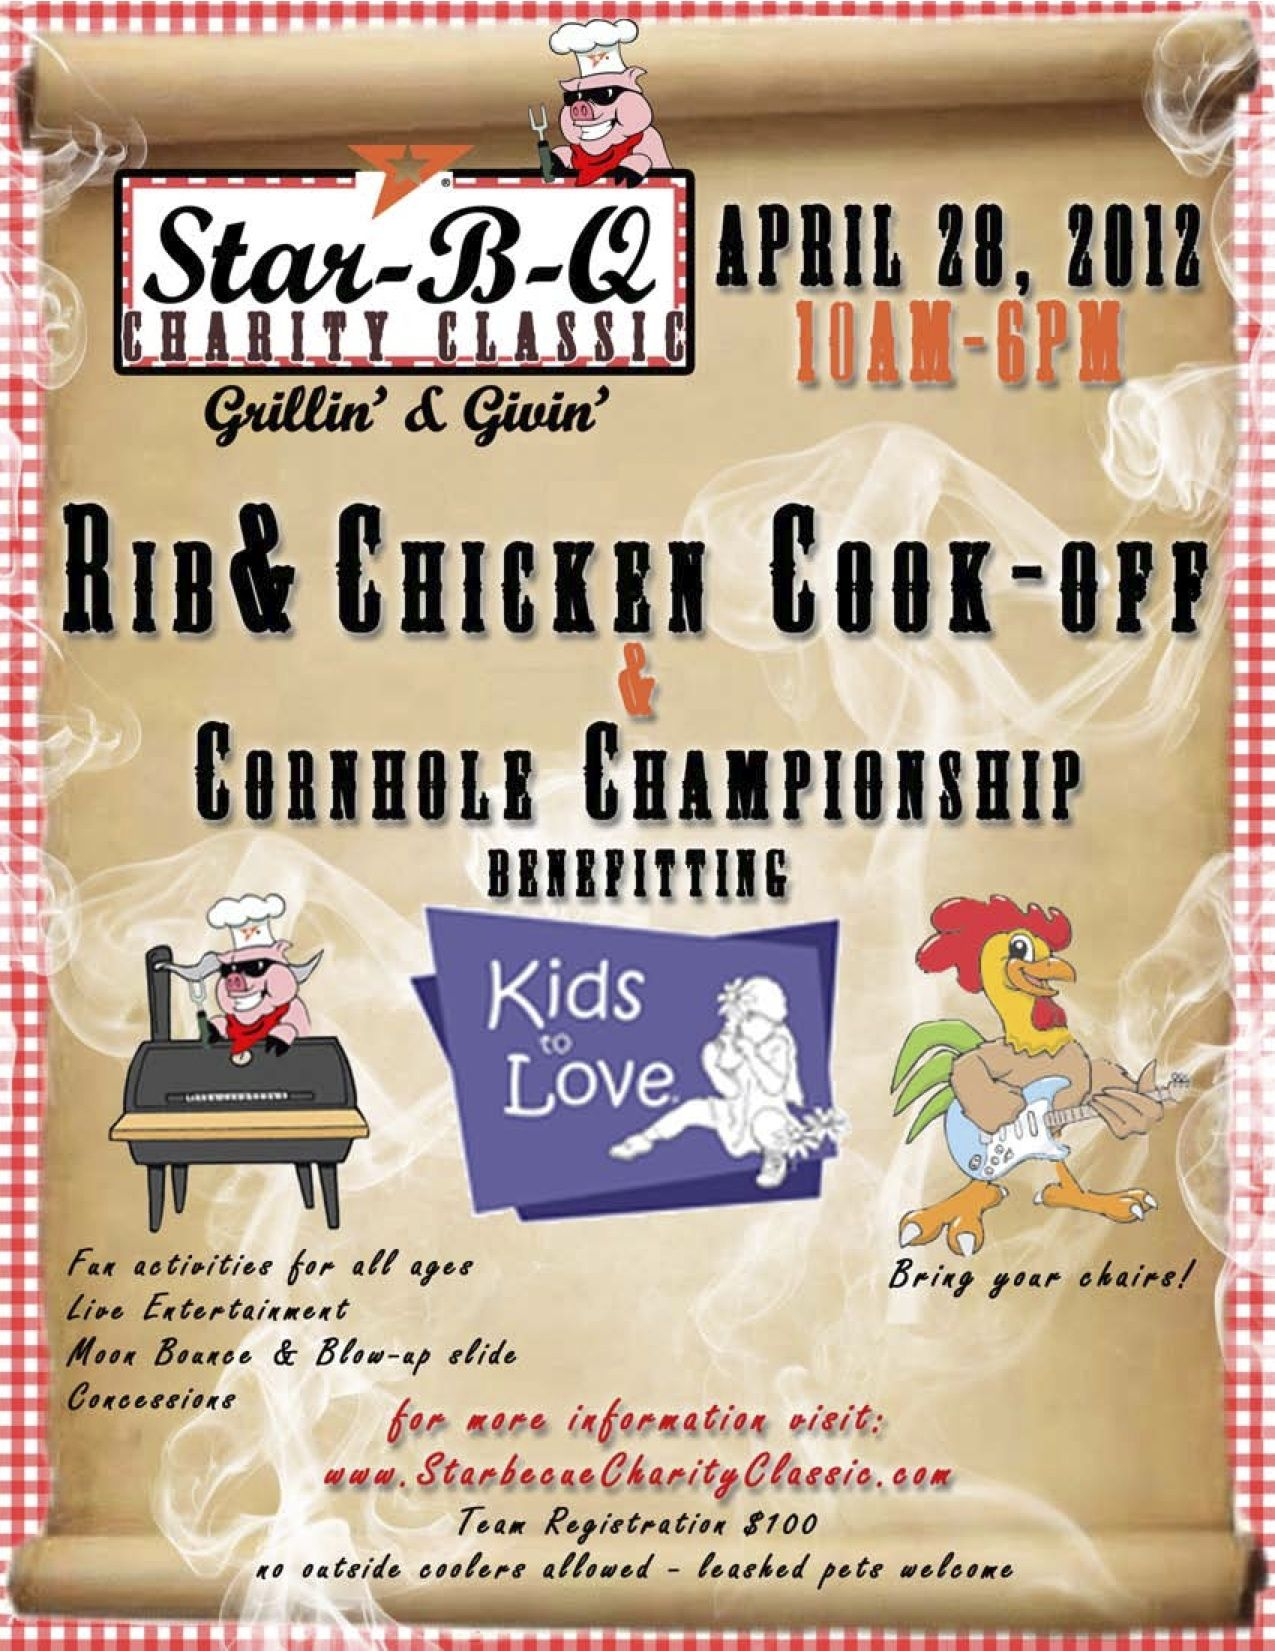 Star-B-Q for Kids to Love!!!!    Mark your calendars for April 28!   We have room for 16 BBQ teams left & we need local bands that want to share their talent on our stage!!!  e-mail us! ksmith.star@gmail.com